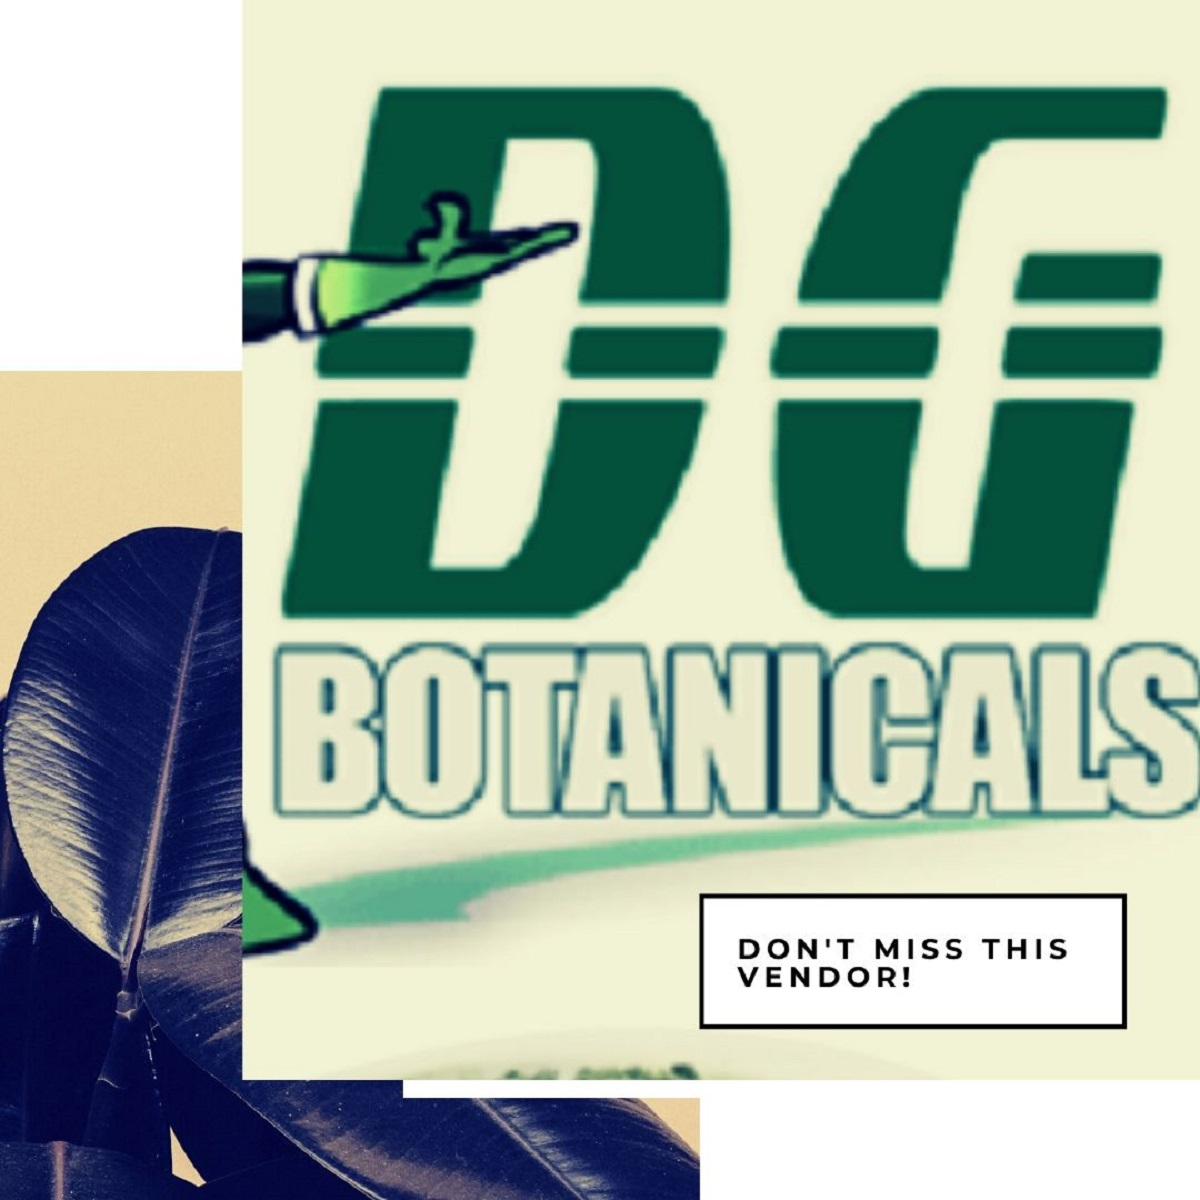 DG Botanicals review